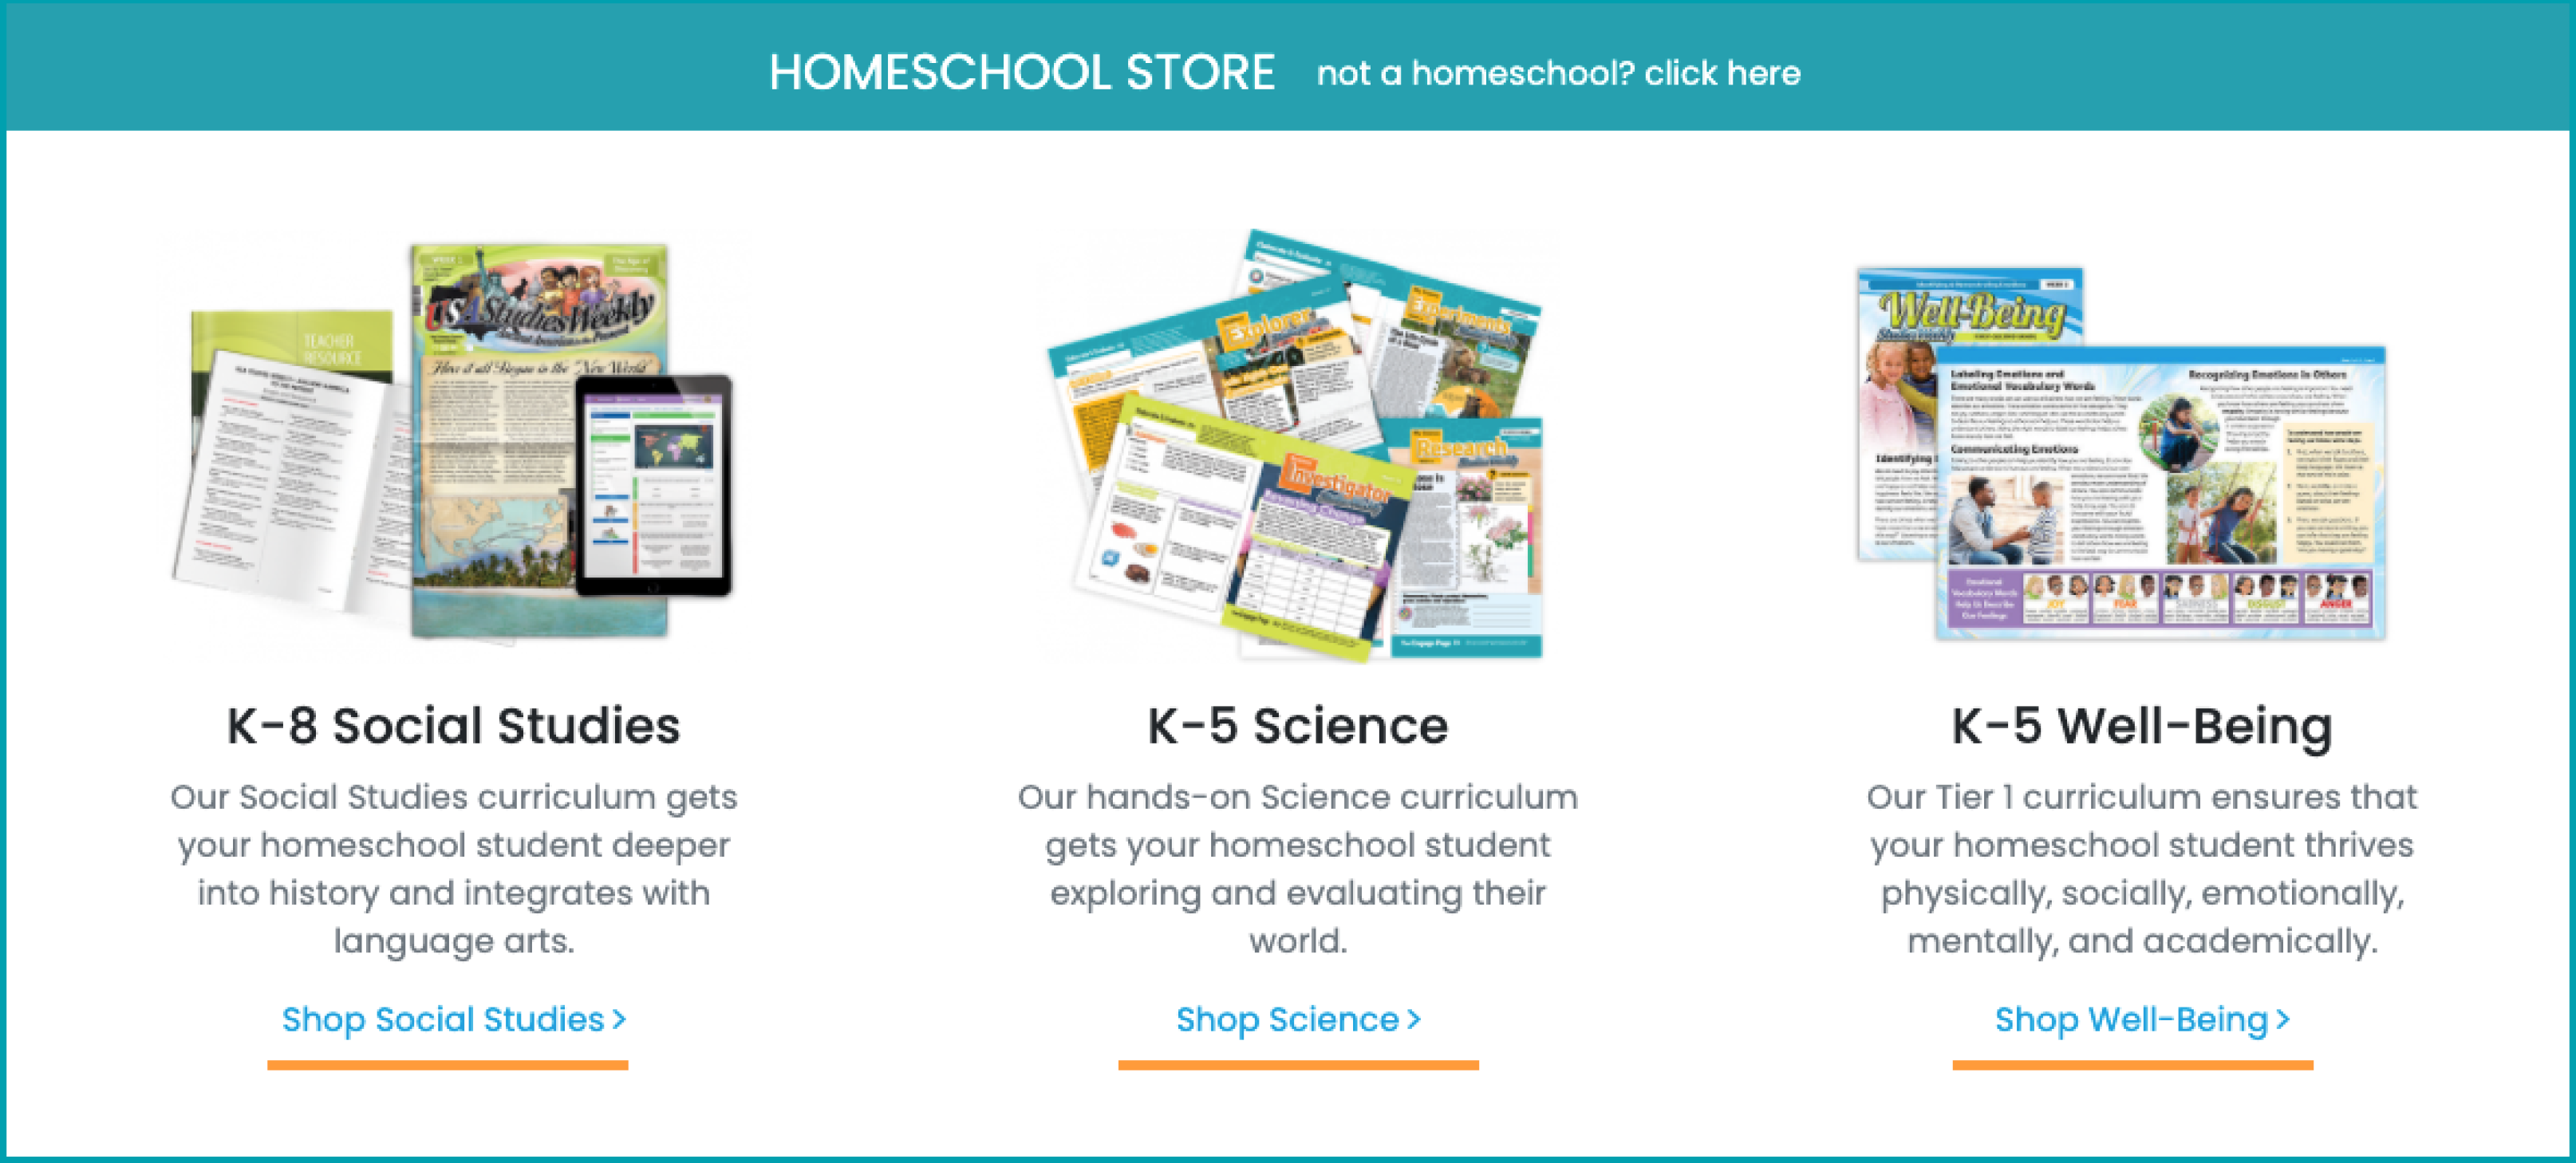 Ordering from Homeschool